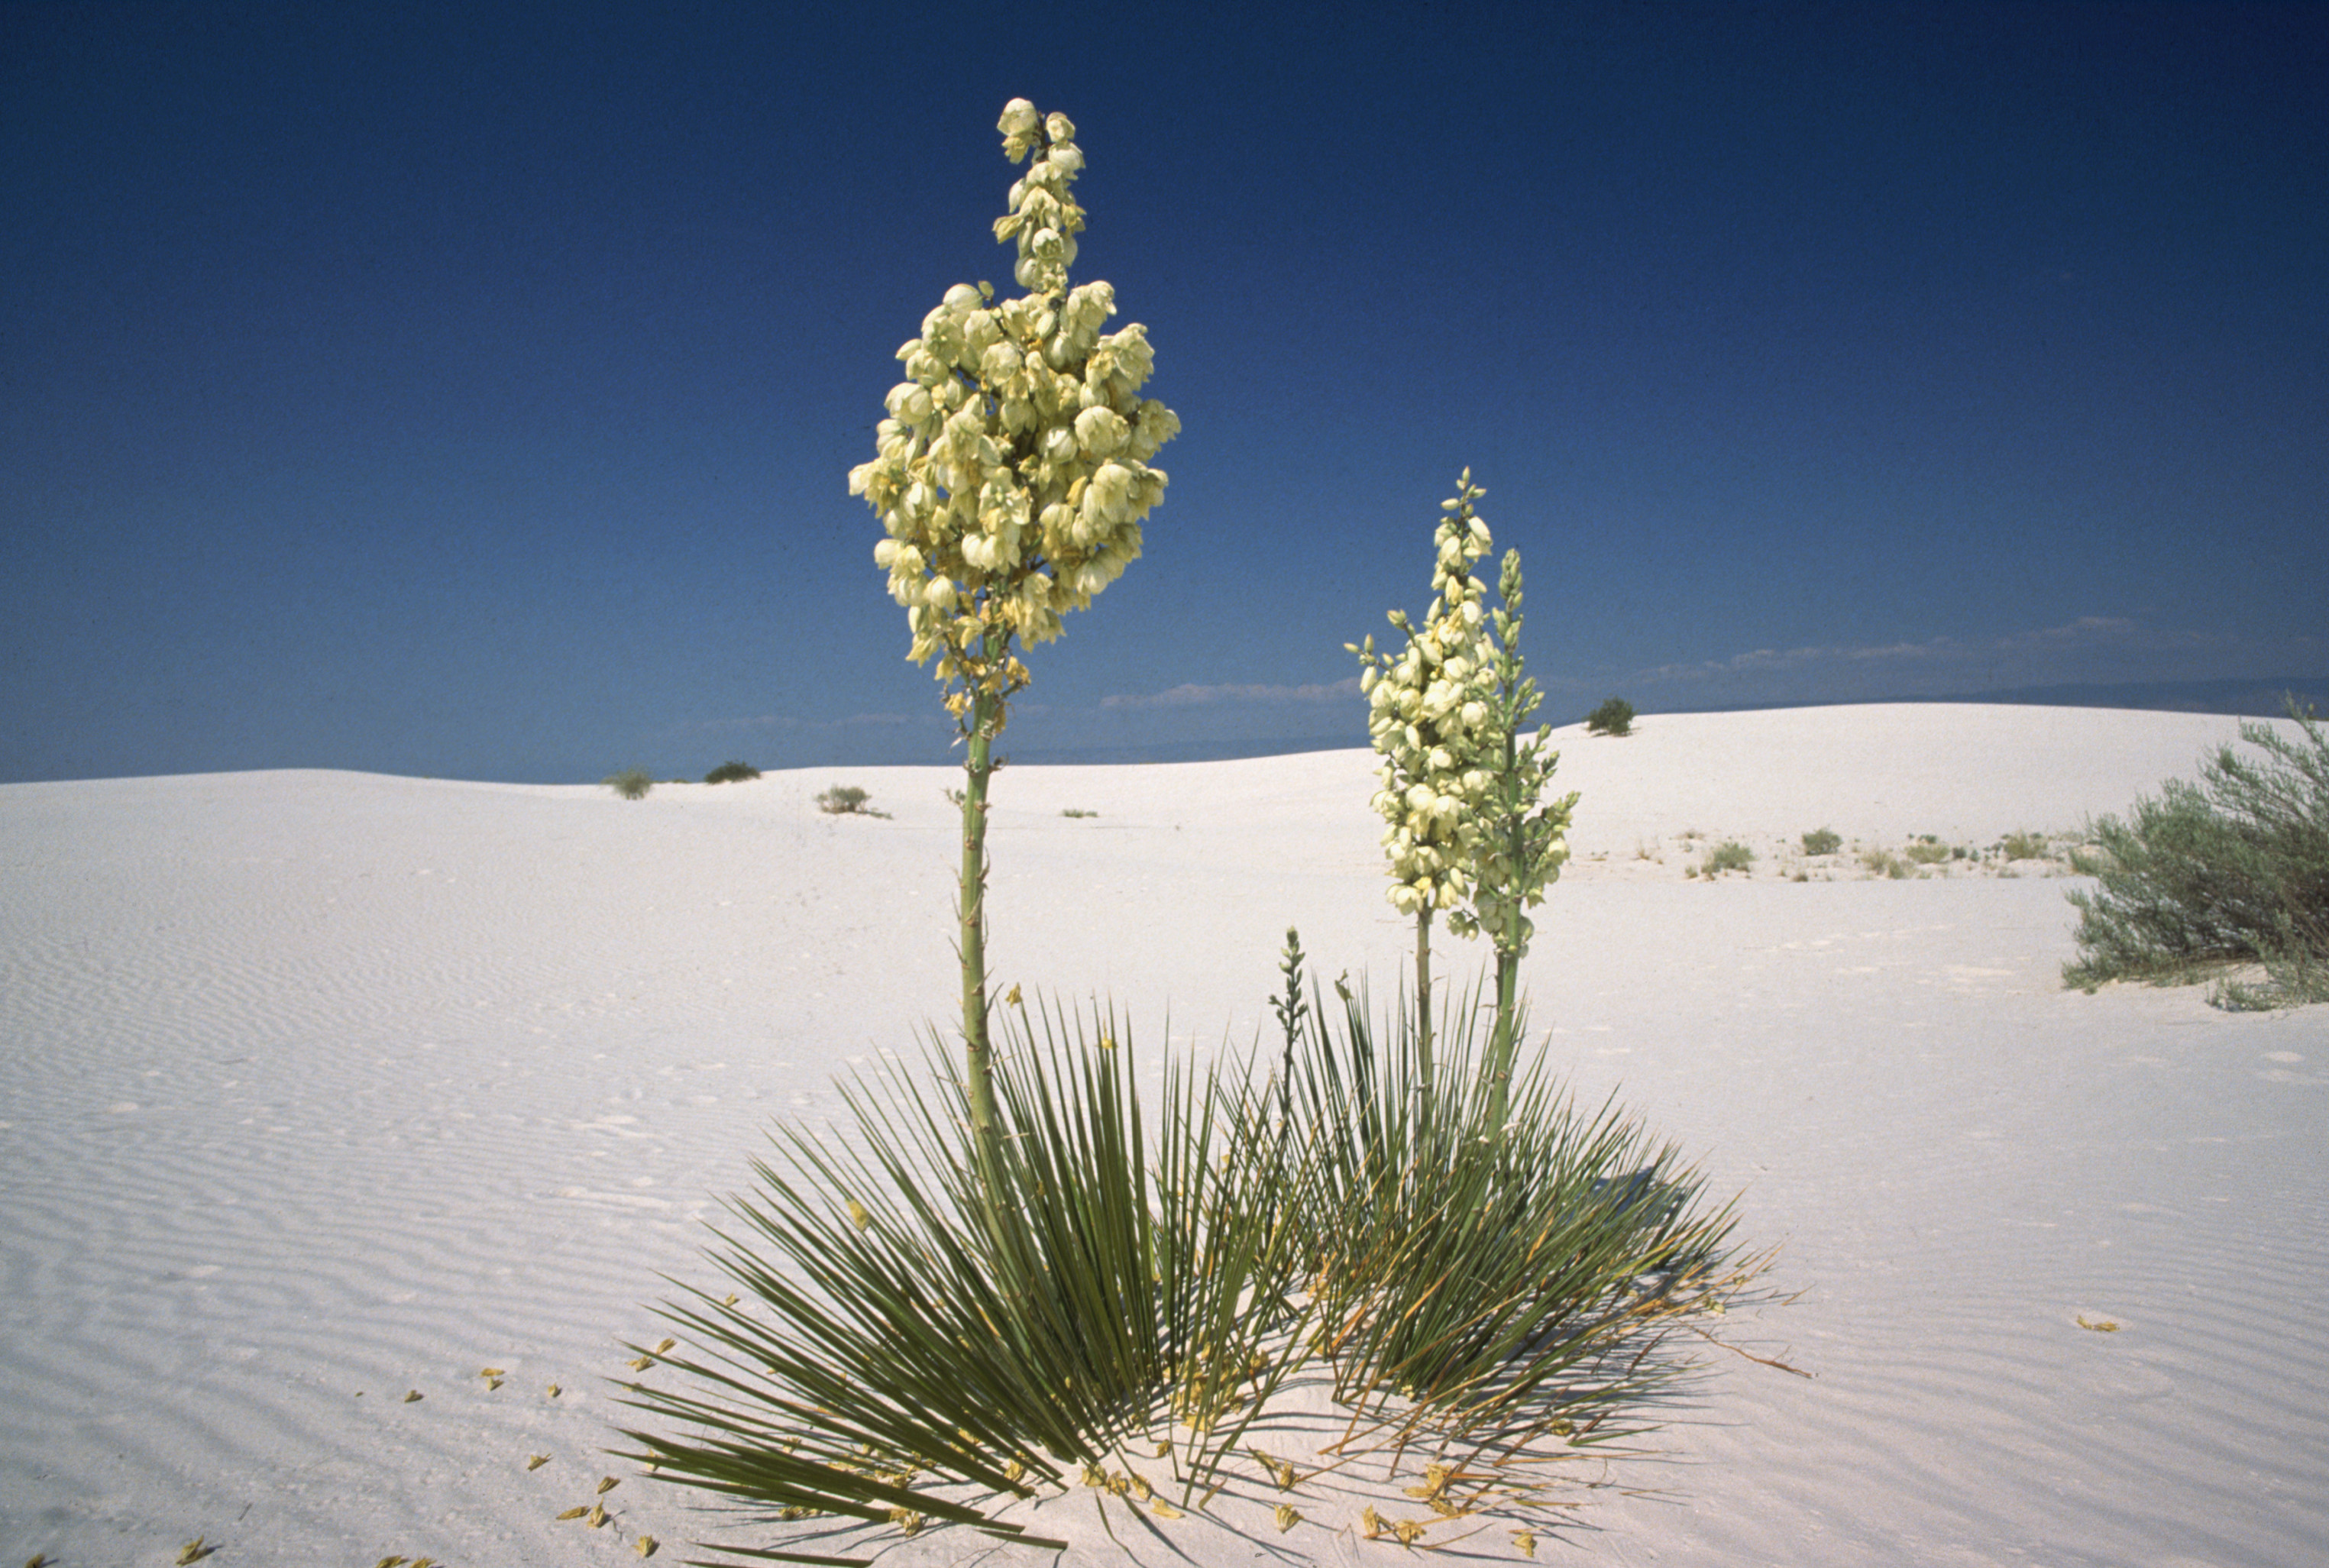 yucca at white sands national monument New Mexico New Mexico H